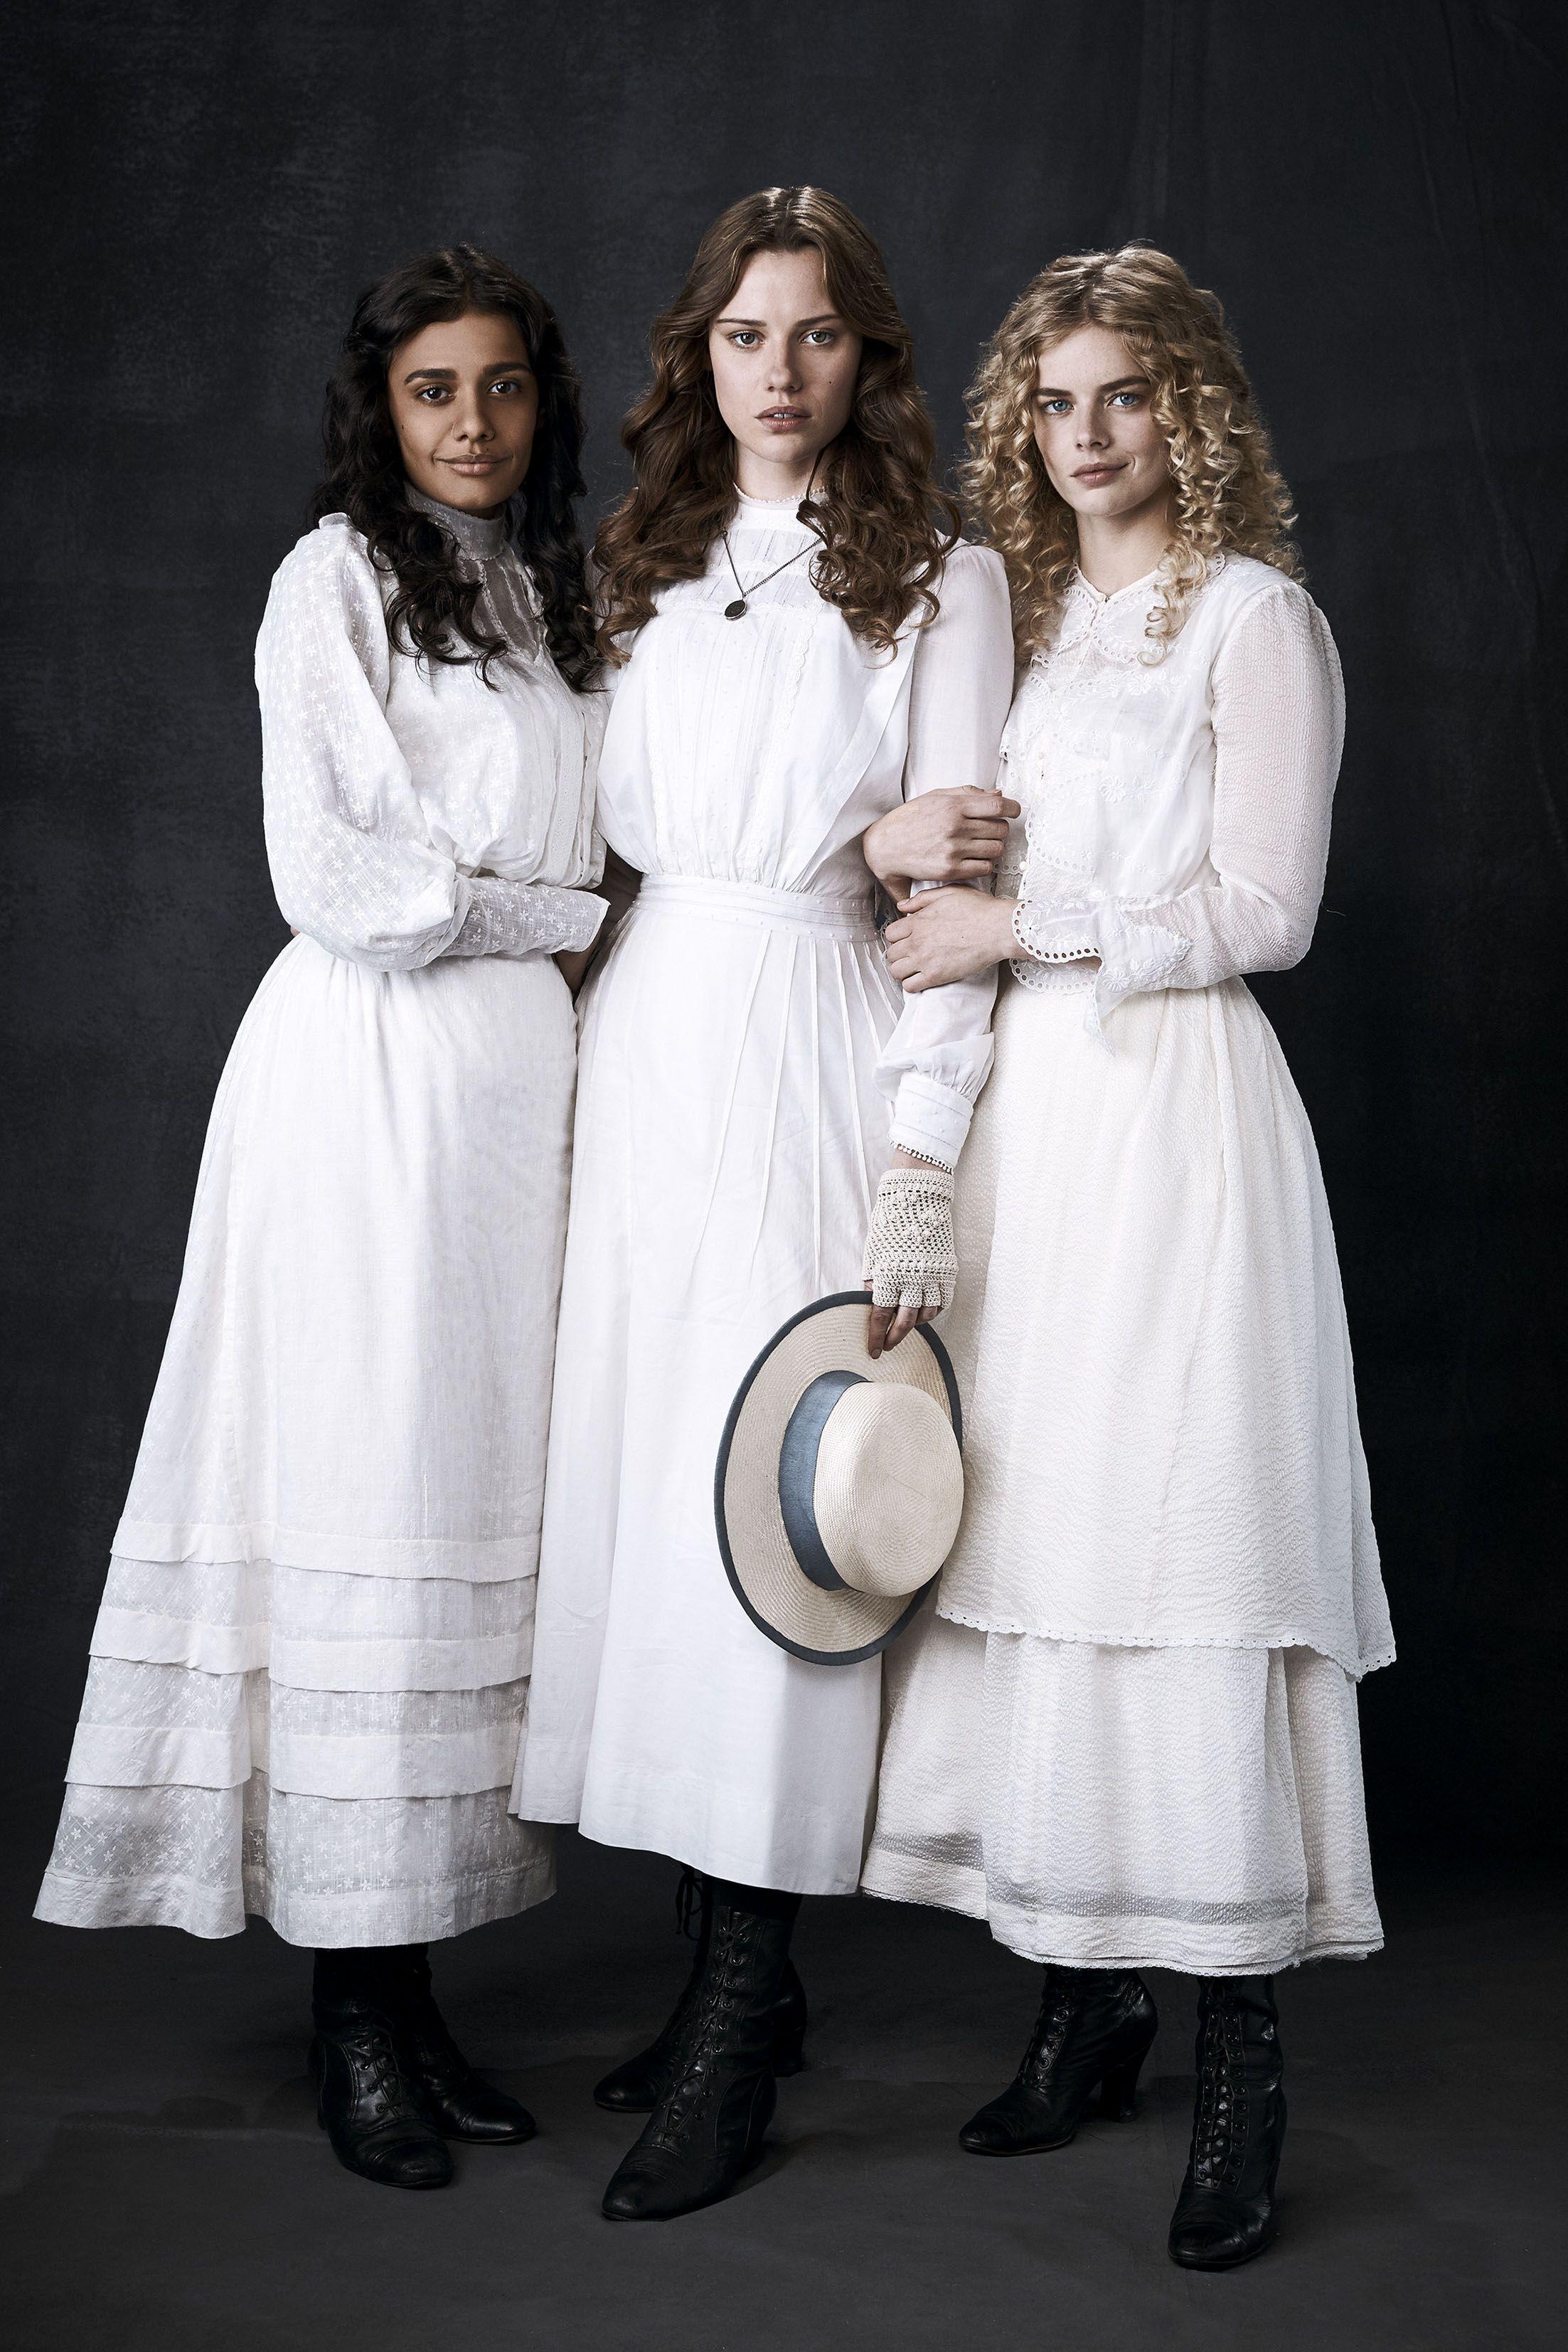 Picnic At Hanging Rock Histoire Vraie : picnic, hanging, histoire, vraie, Hanging, Picnic, Rock,, Dresses,, Victorian, Style, Clothing